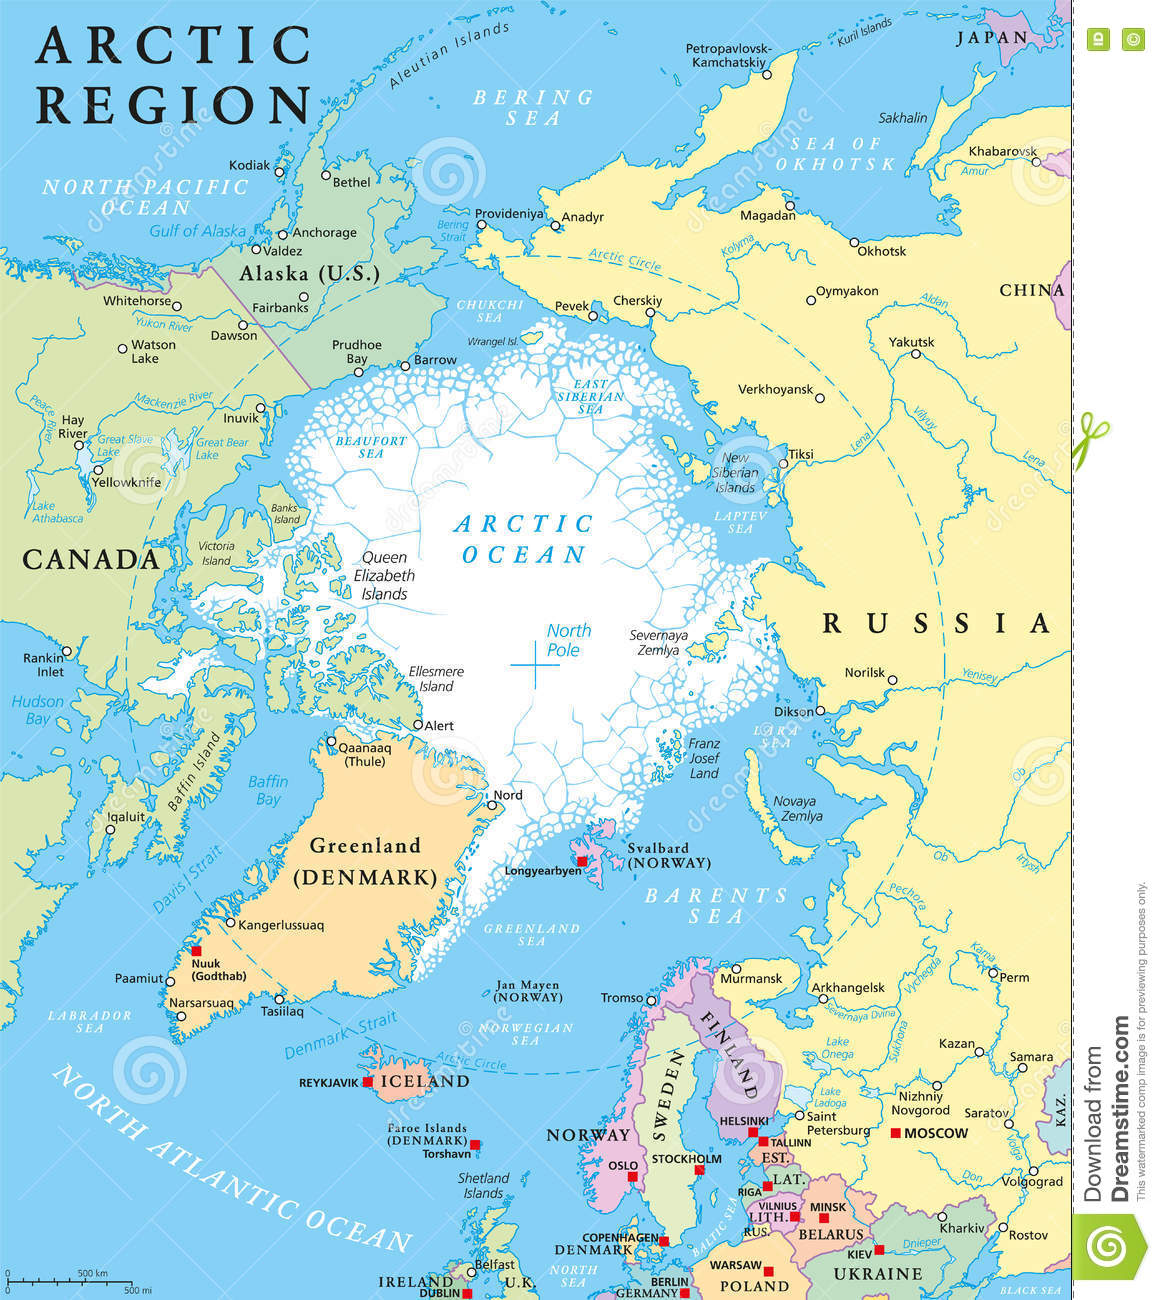 an in depth look at the arctic ocean in the north pole region The arctic ocean, centred on the geographic north pole, has an area of about   in the arctic ocean, the circulation at depth is very different to the circulation on   the higher pressure at greater depths – can seem insignificant (a few dozen kg.